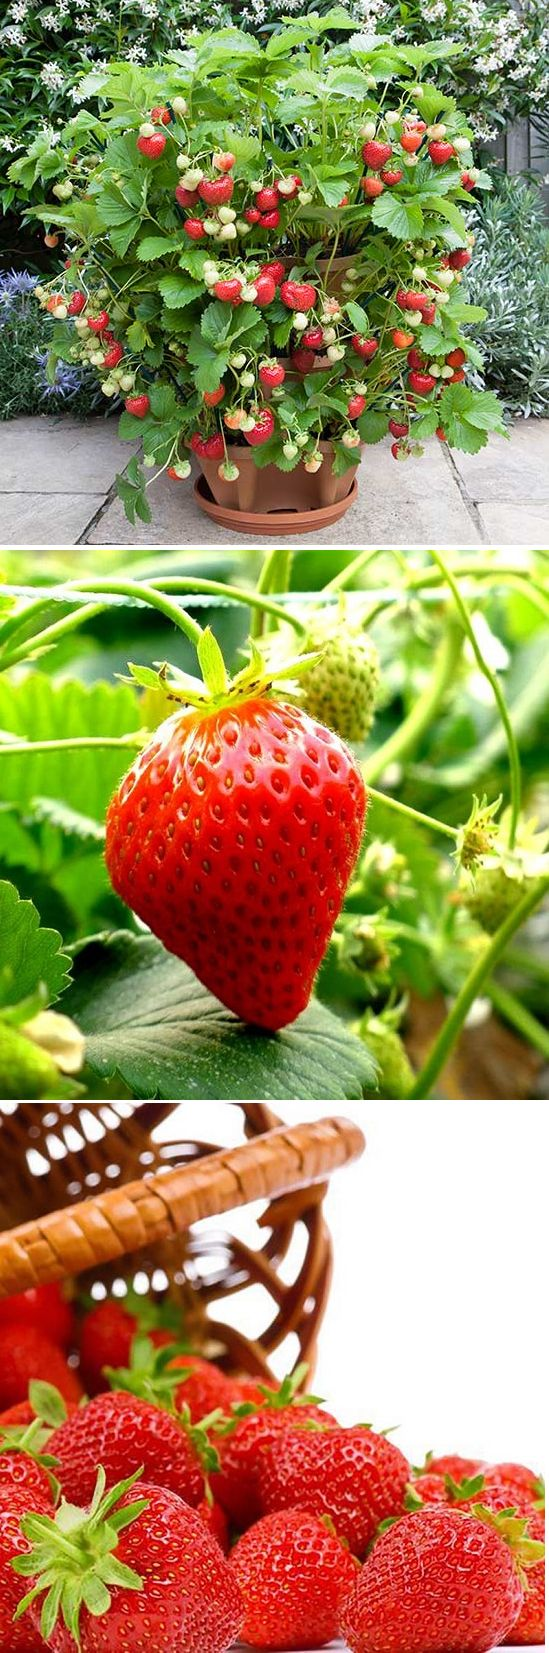 US$3.99 100Pcs Giant Red Strawberry Seeds Rarest Heirloom Super Giant Japan Strawber Seeds Garden